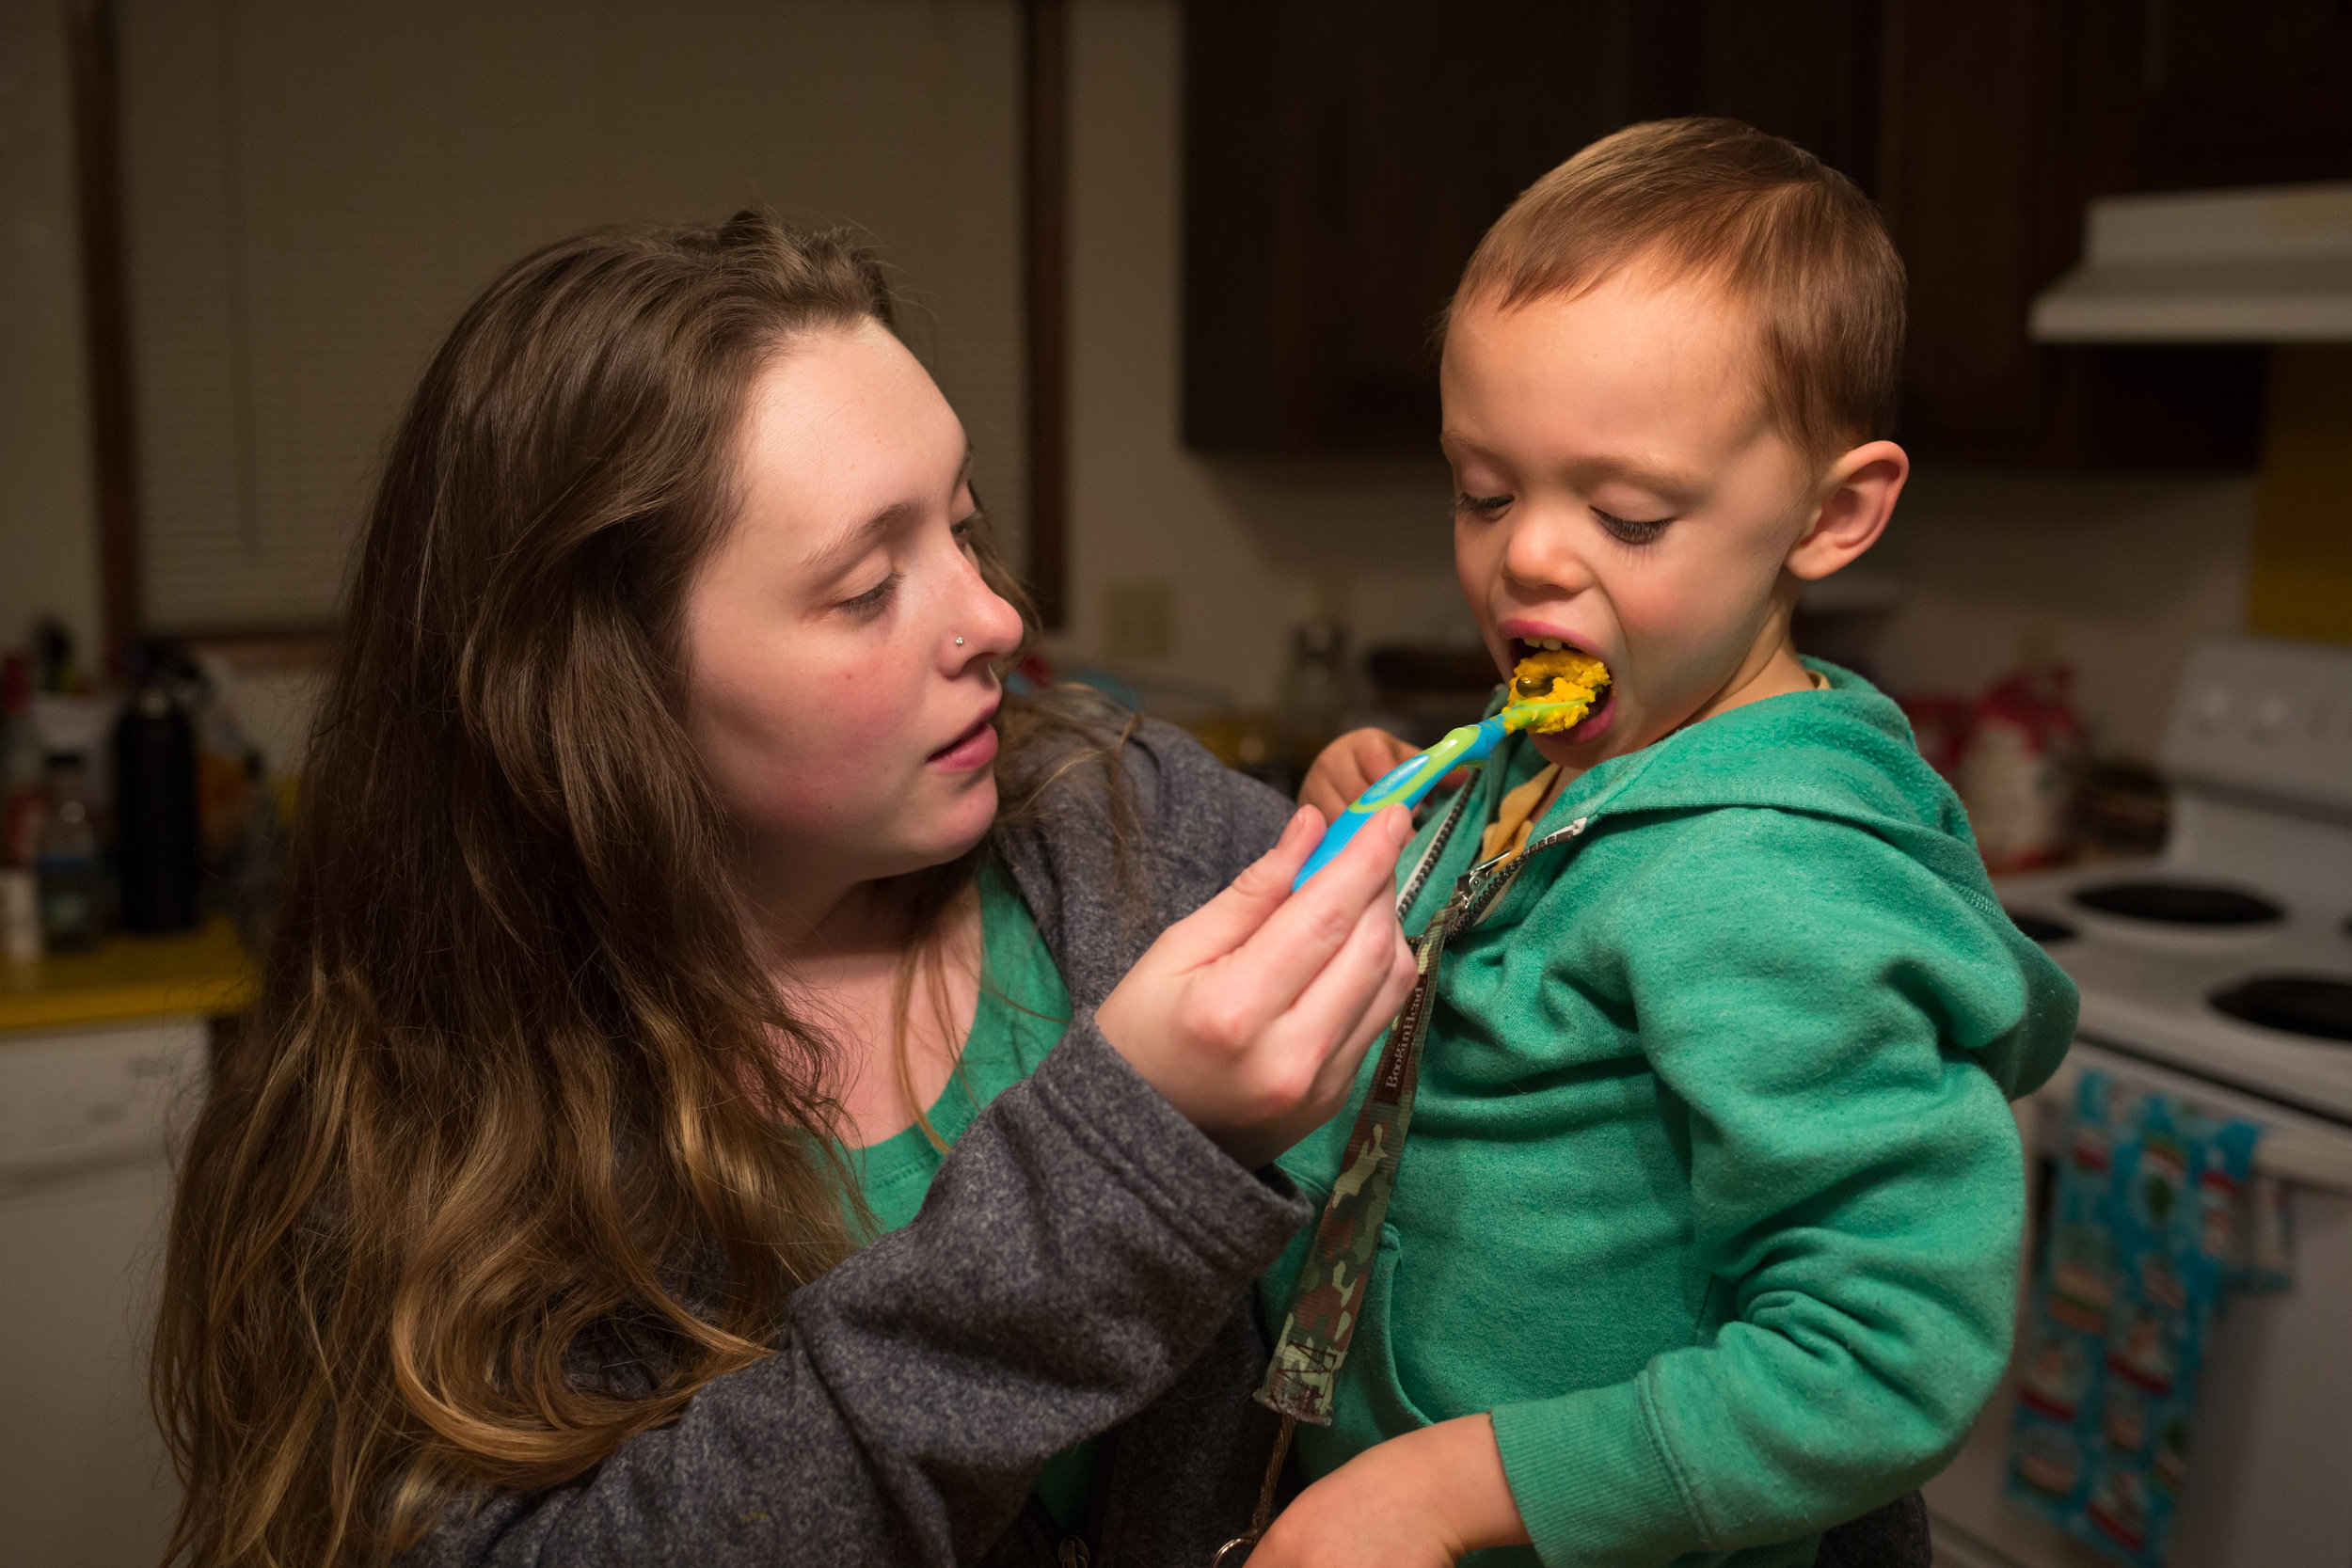 """After dinner, Paige gives James his medicine in the form of a cannabis oil filled capsule. James takes about 45mg of CBD and THC/THCA oil throughout the day. The CBD helps reduce his seizures while the THC and THCA helps regulate his emotions and impulse control. """"He is more able to recognize his own body and calm it down,"""" Paige said."""